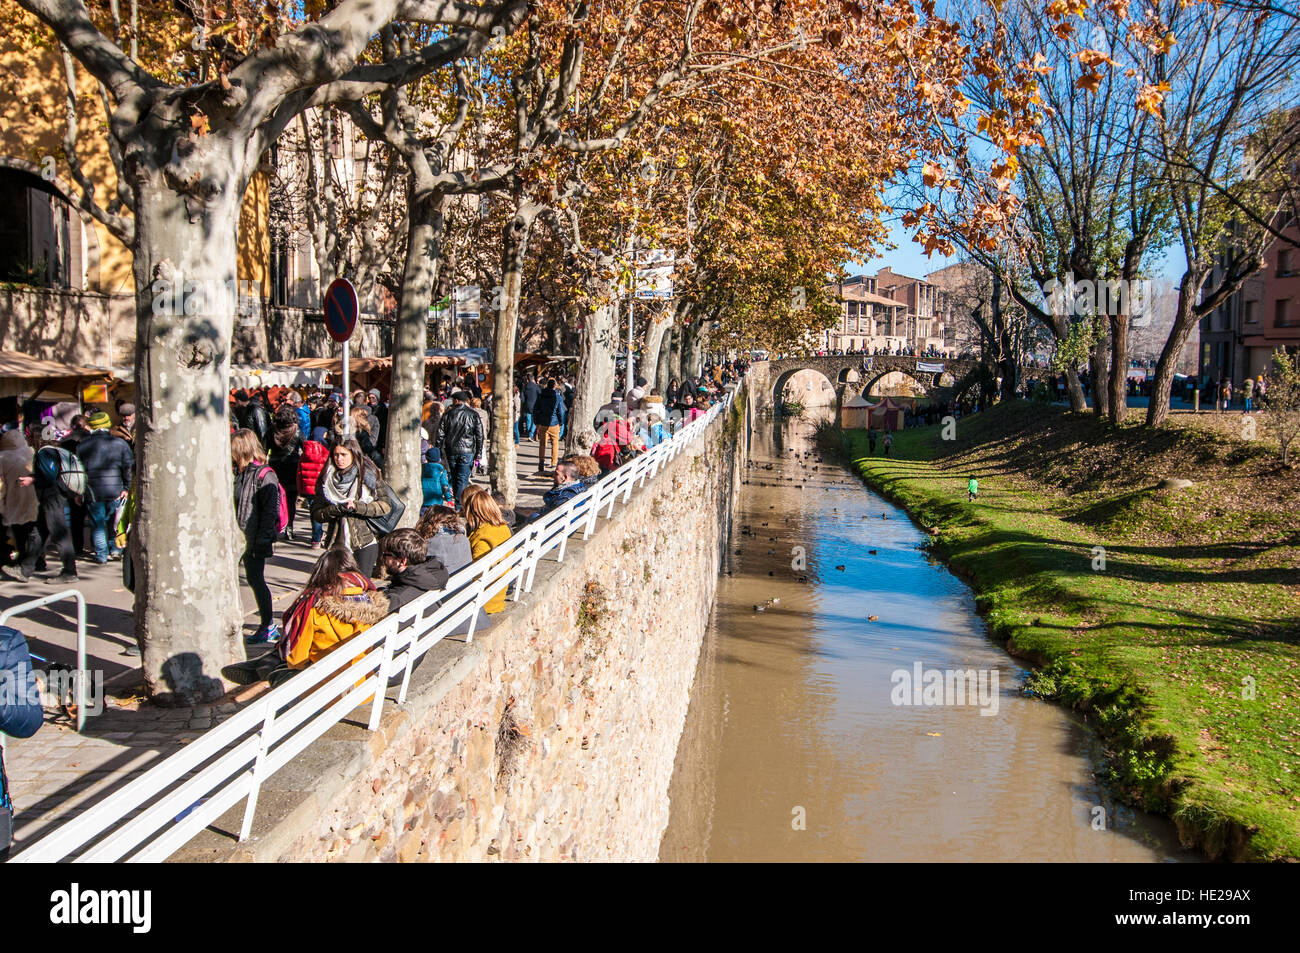 Group of people wlaking in the city of Vic, catalonia, Spain - Stock Image